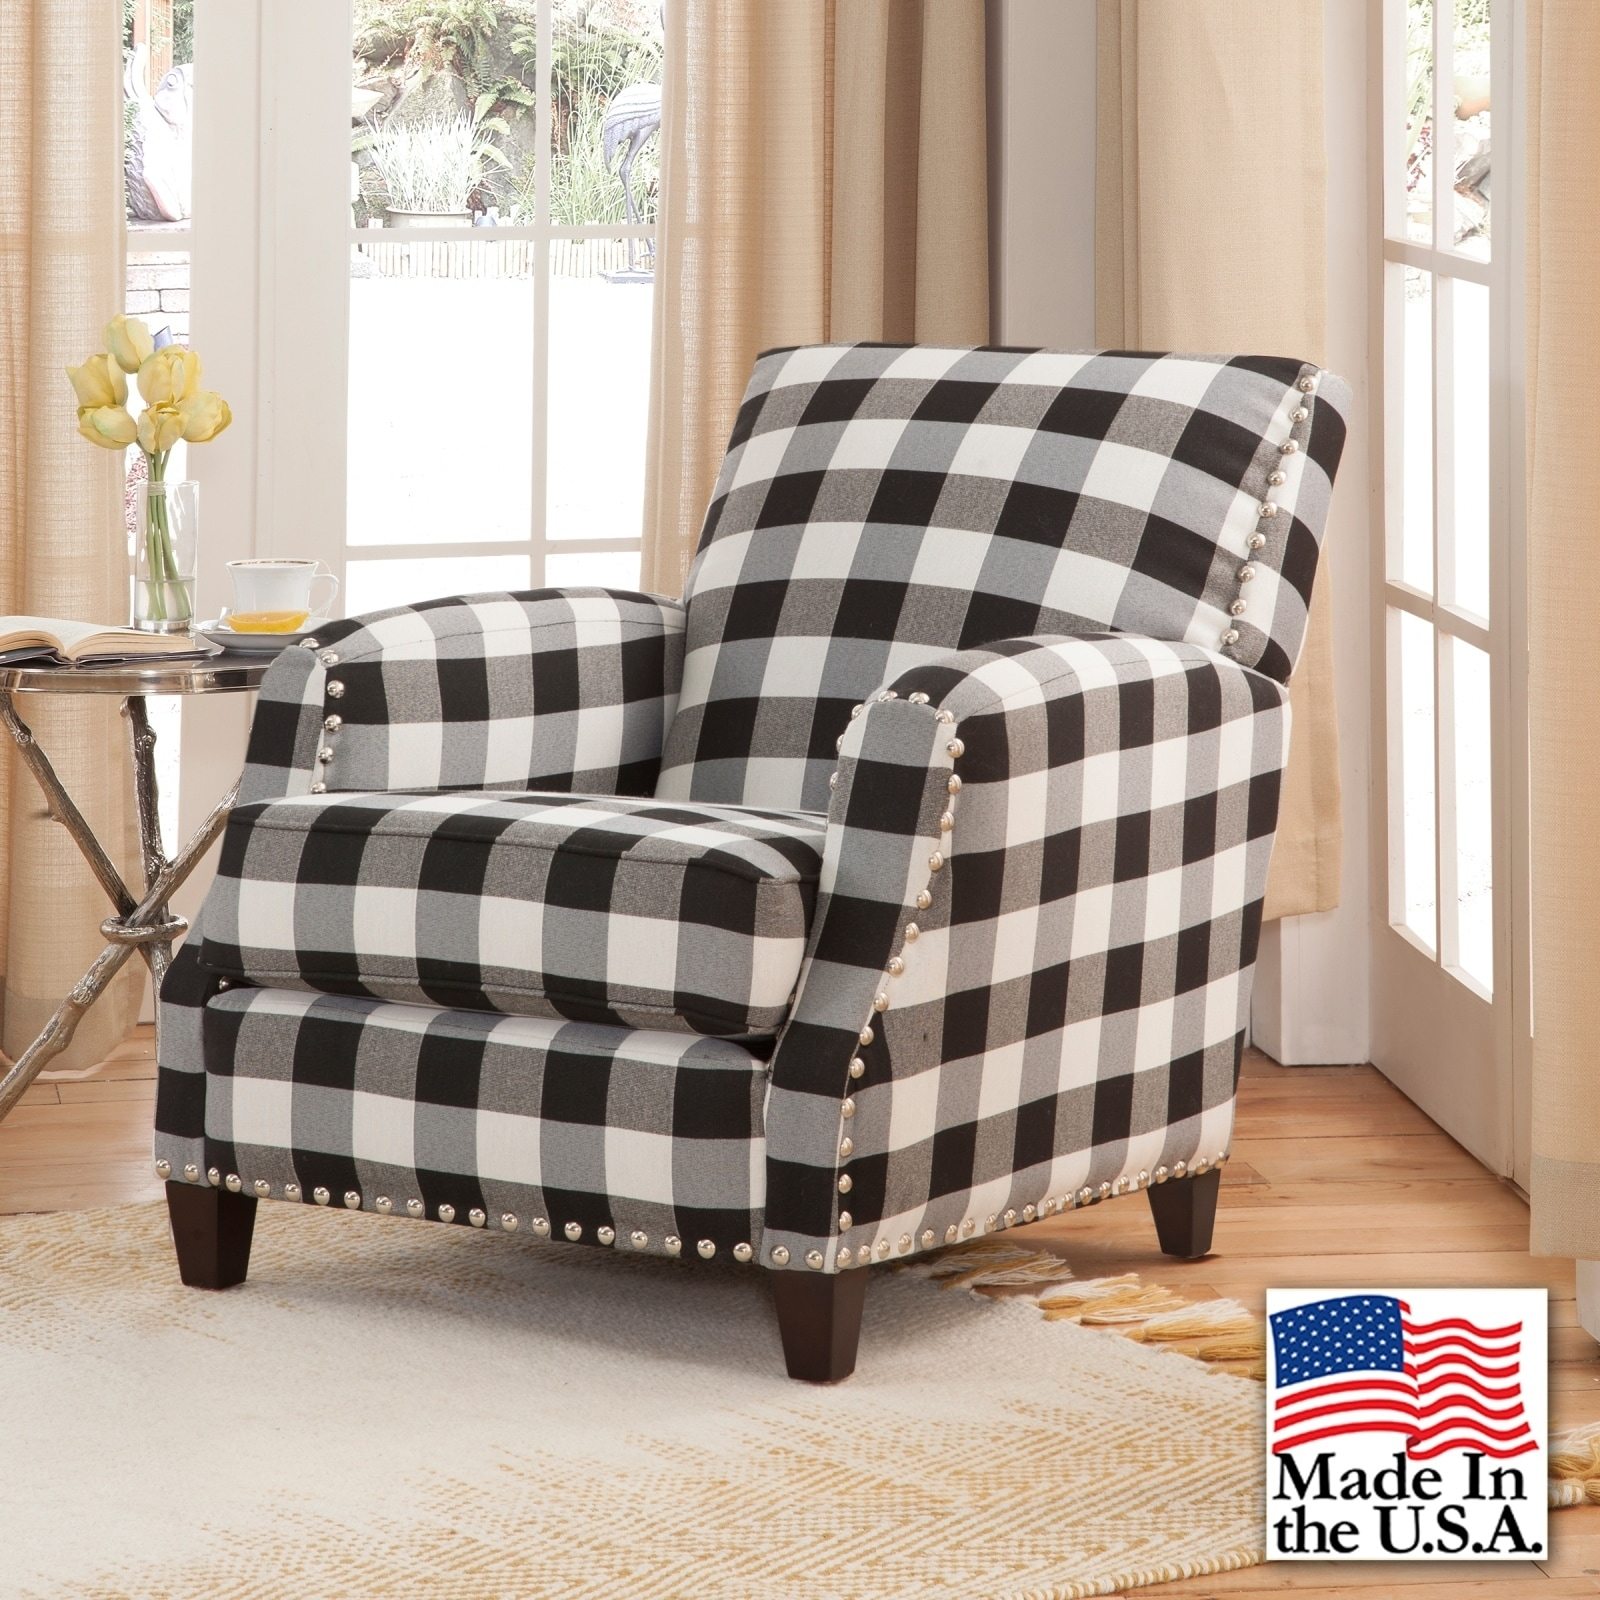 Merveilleux Shop Holland Black And White Plaid Chair   Free Shipping Today    Overstock.com   19977059